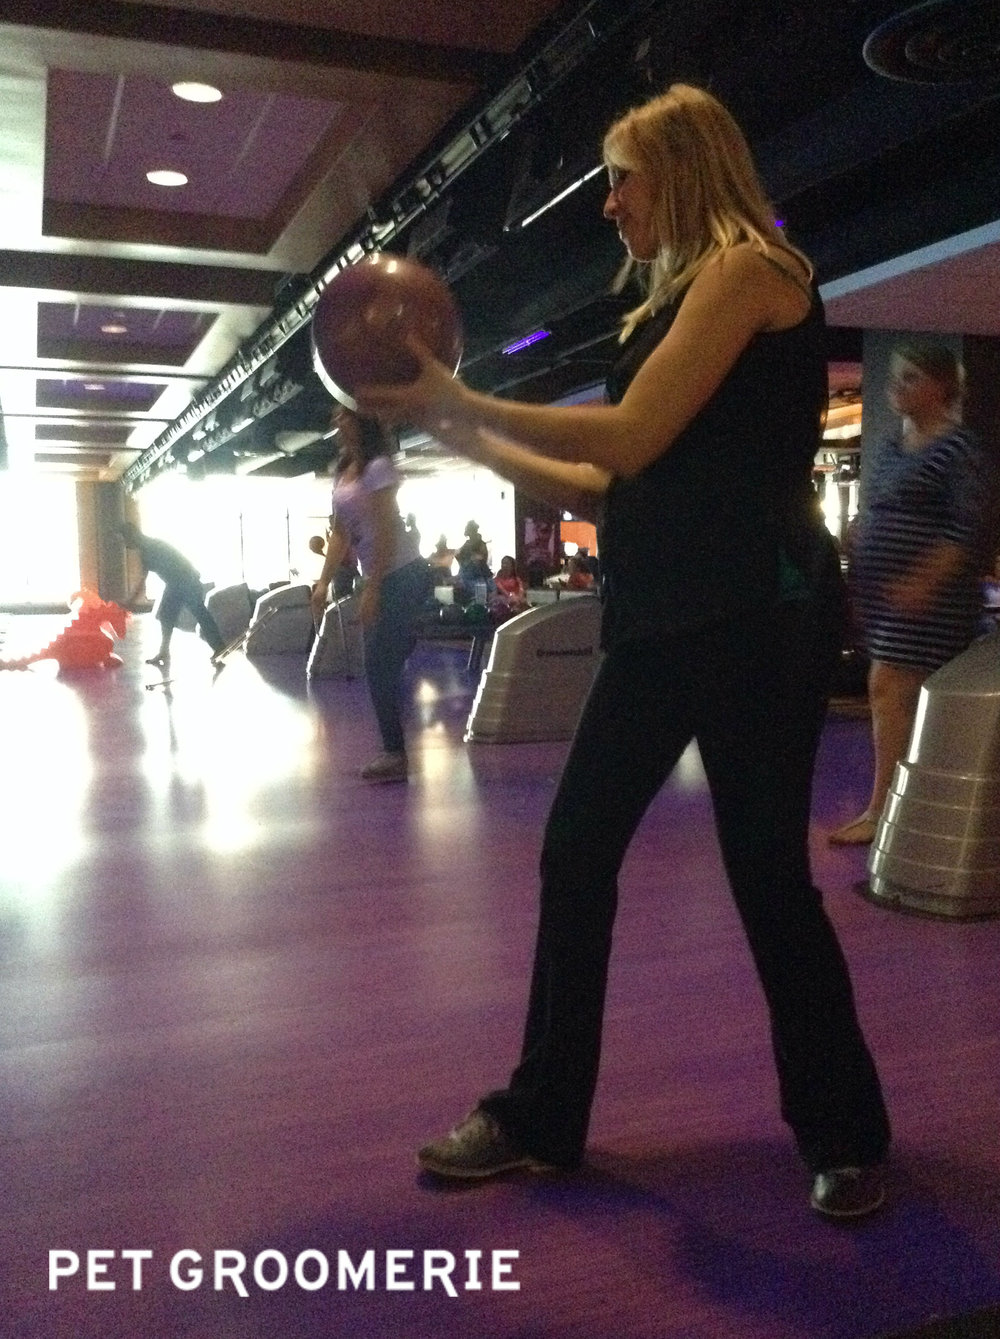 Bowling ball in the belly, bowling ball in the hand.